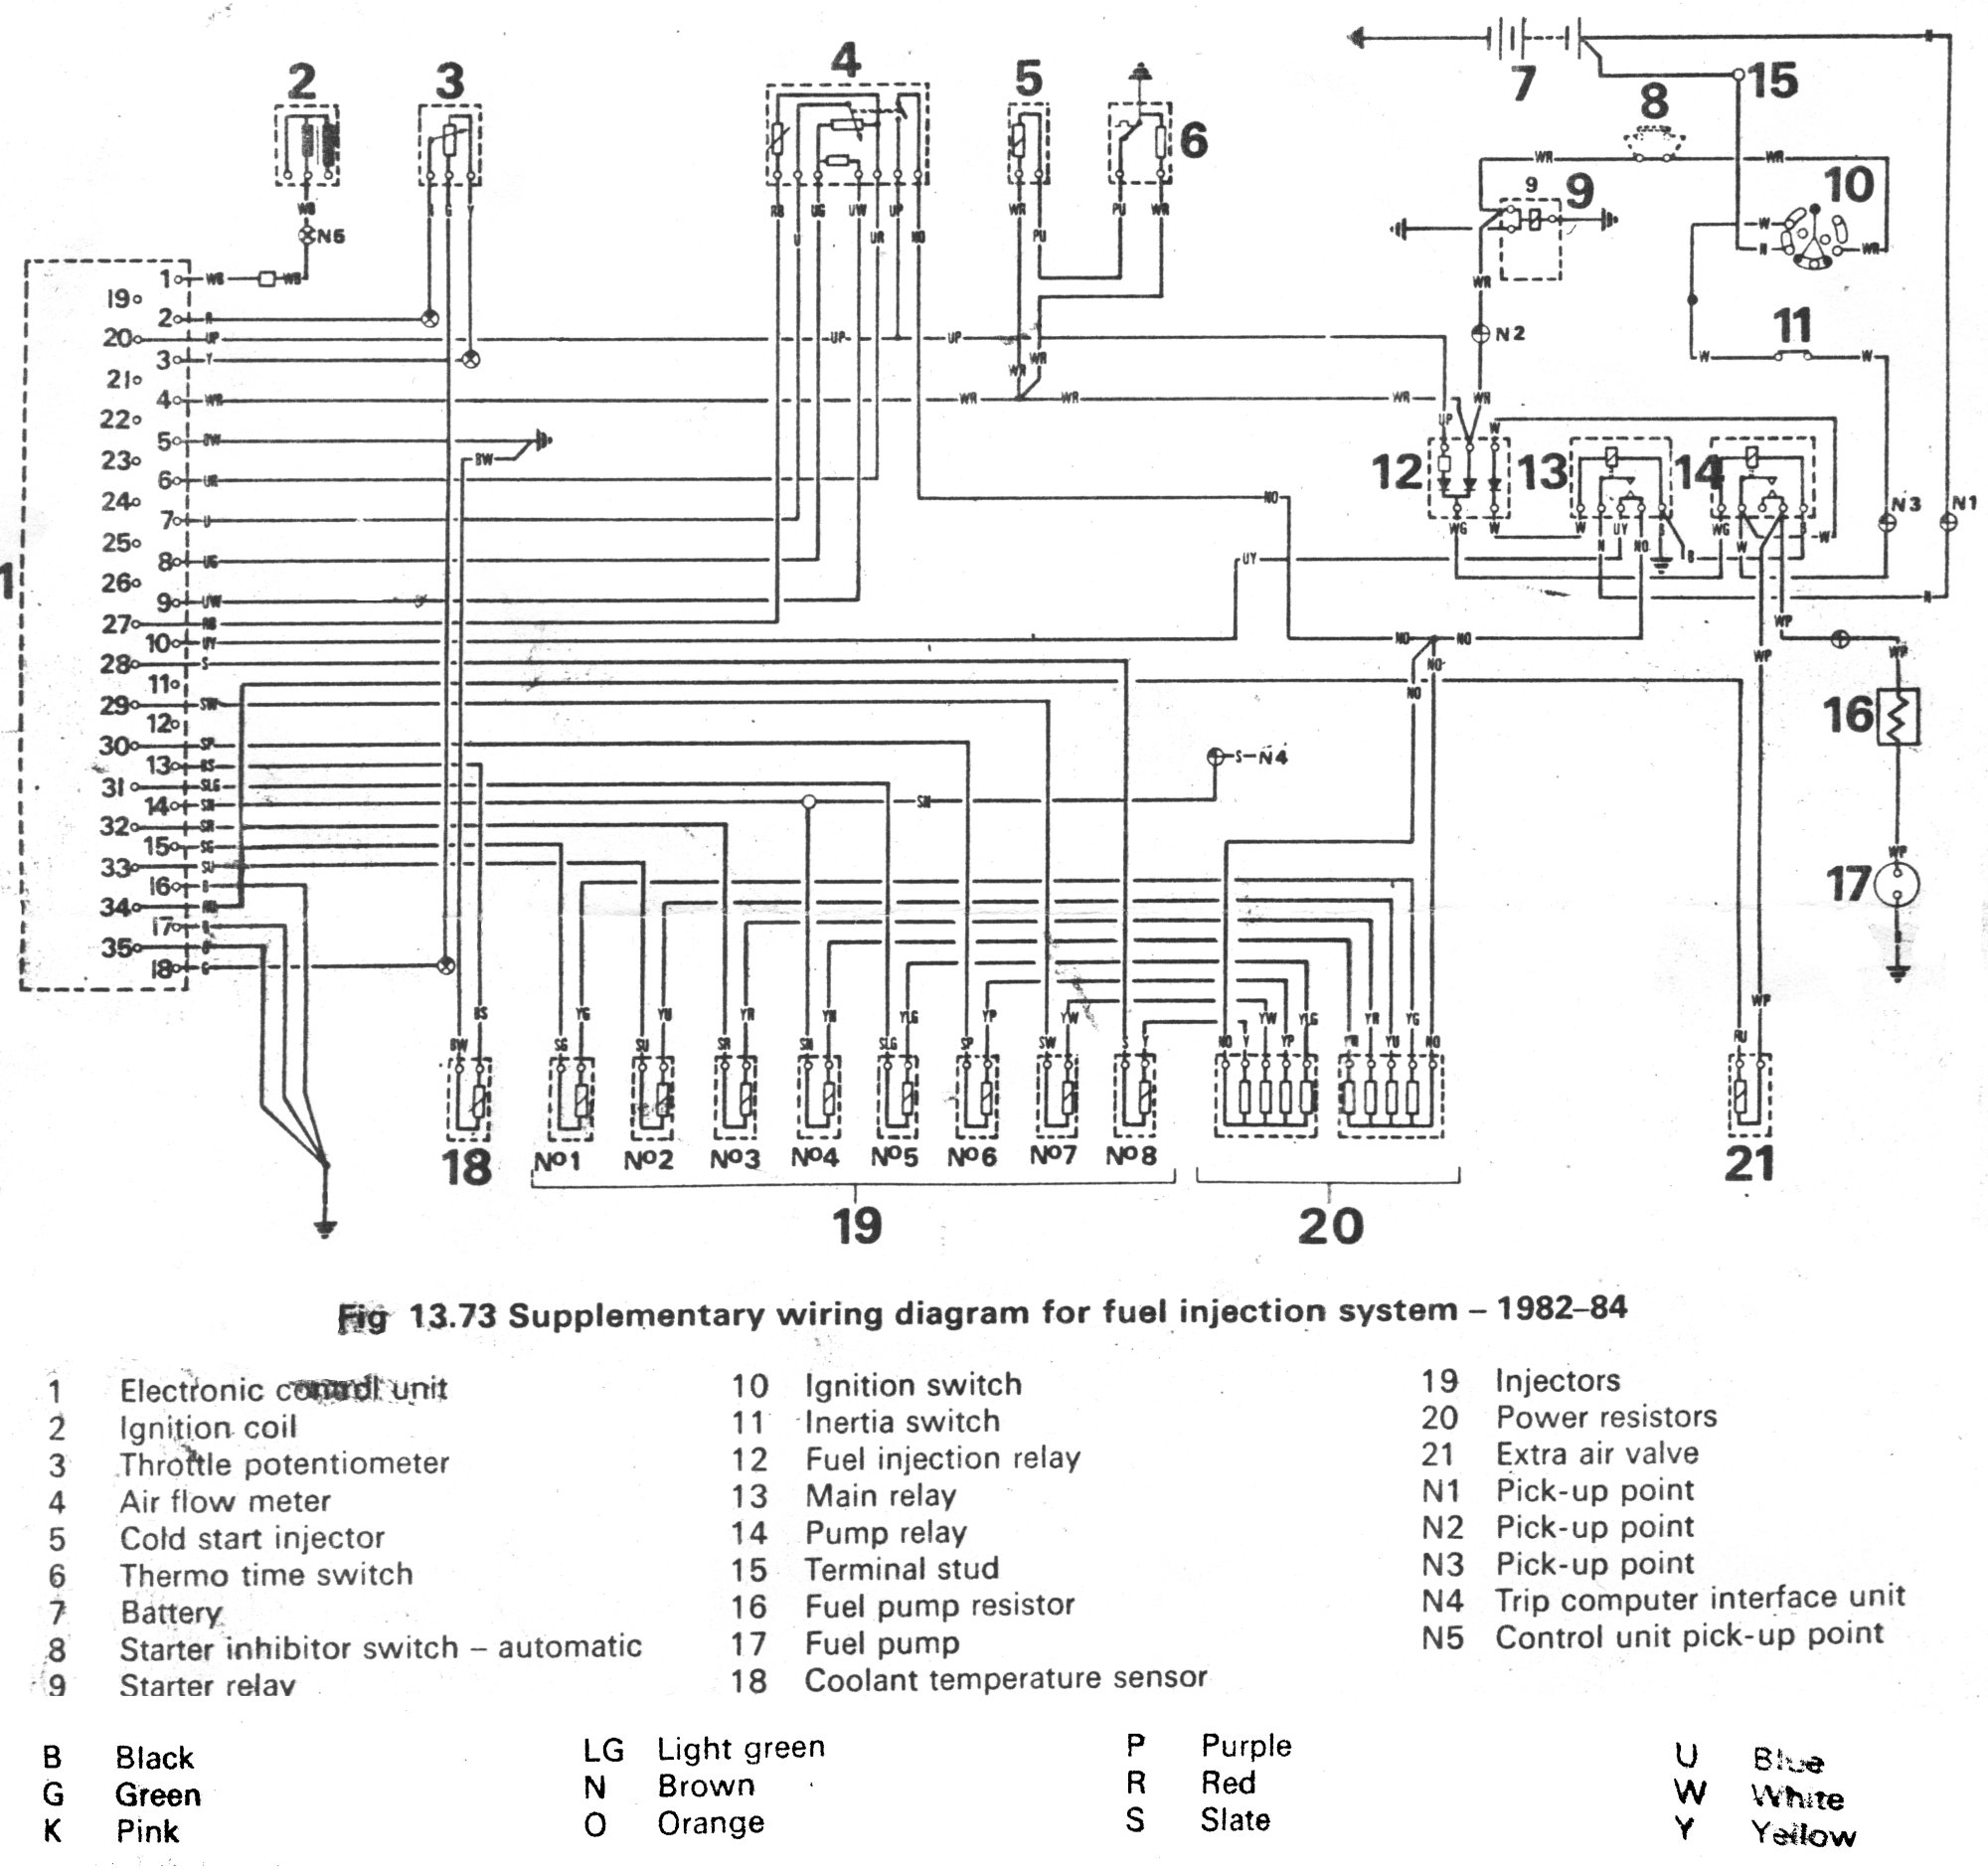 lucas_efi_1982_1984 v8 flapper efi wiring diagram please!!! discovery forum lr4x4 2009 Silverado Trailer Wiring Diagram at panicattacktreatment.co